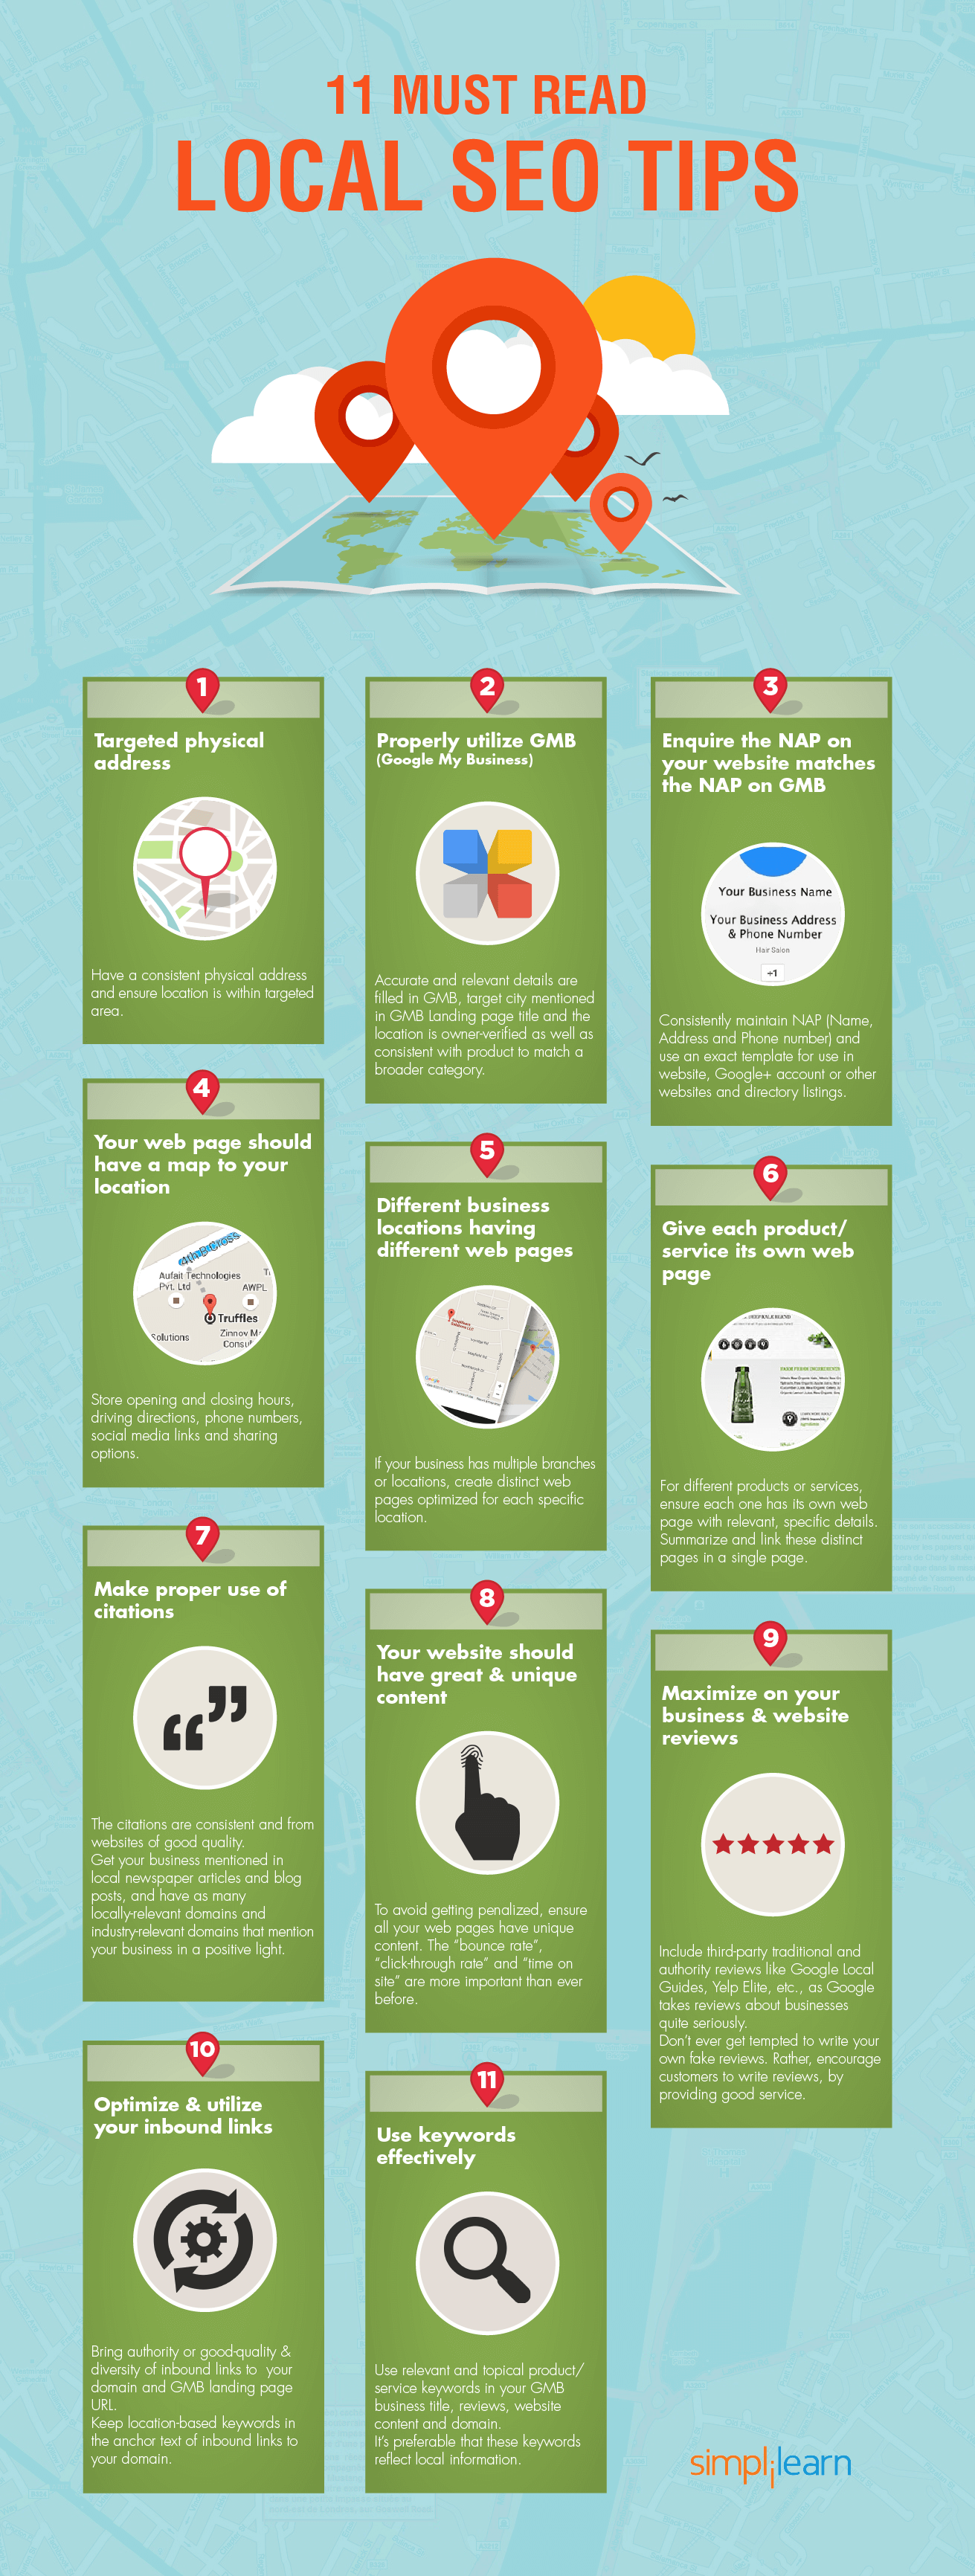 local seo tips infographic 2016